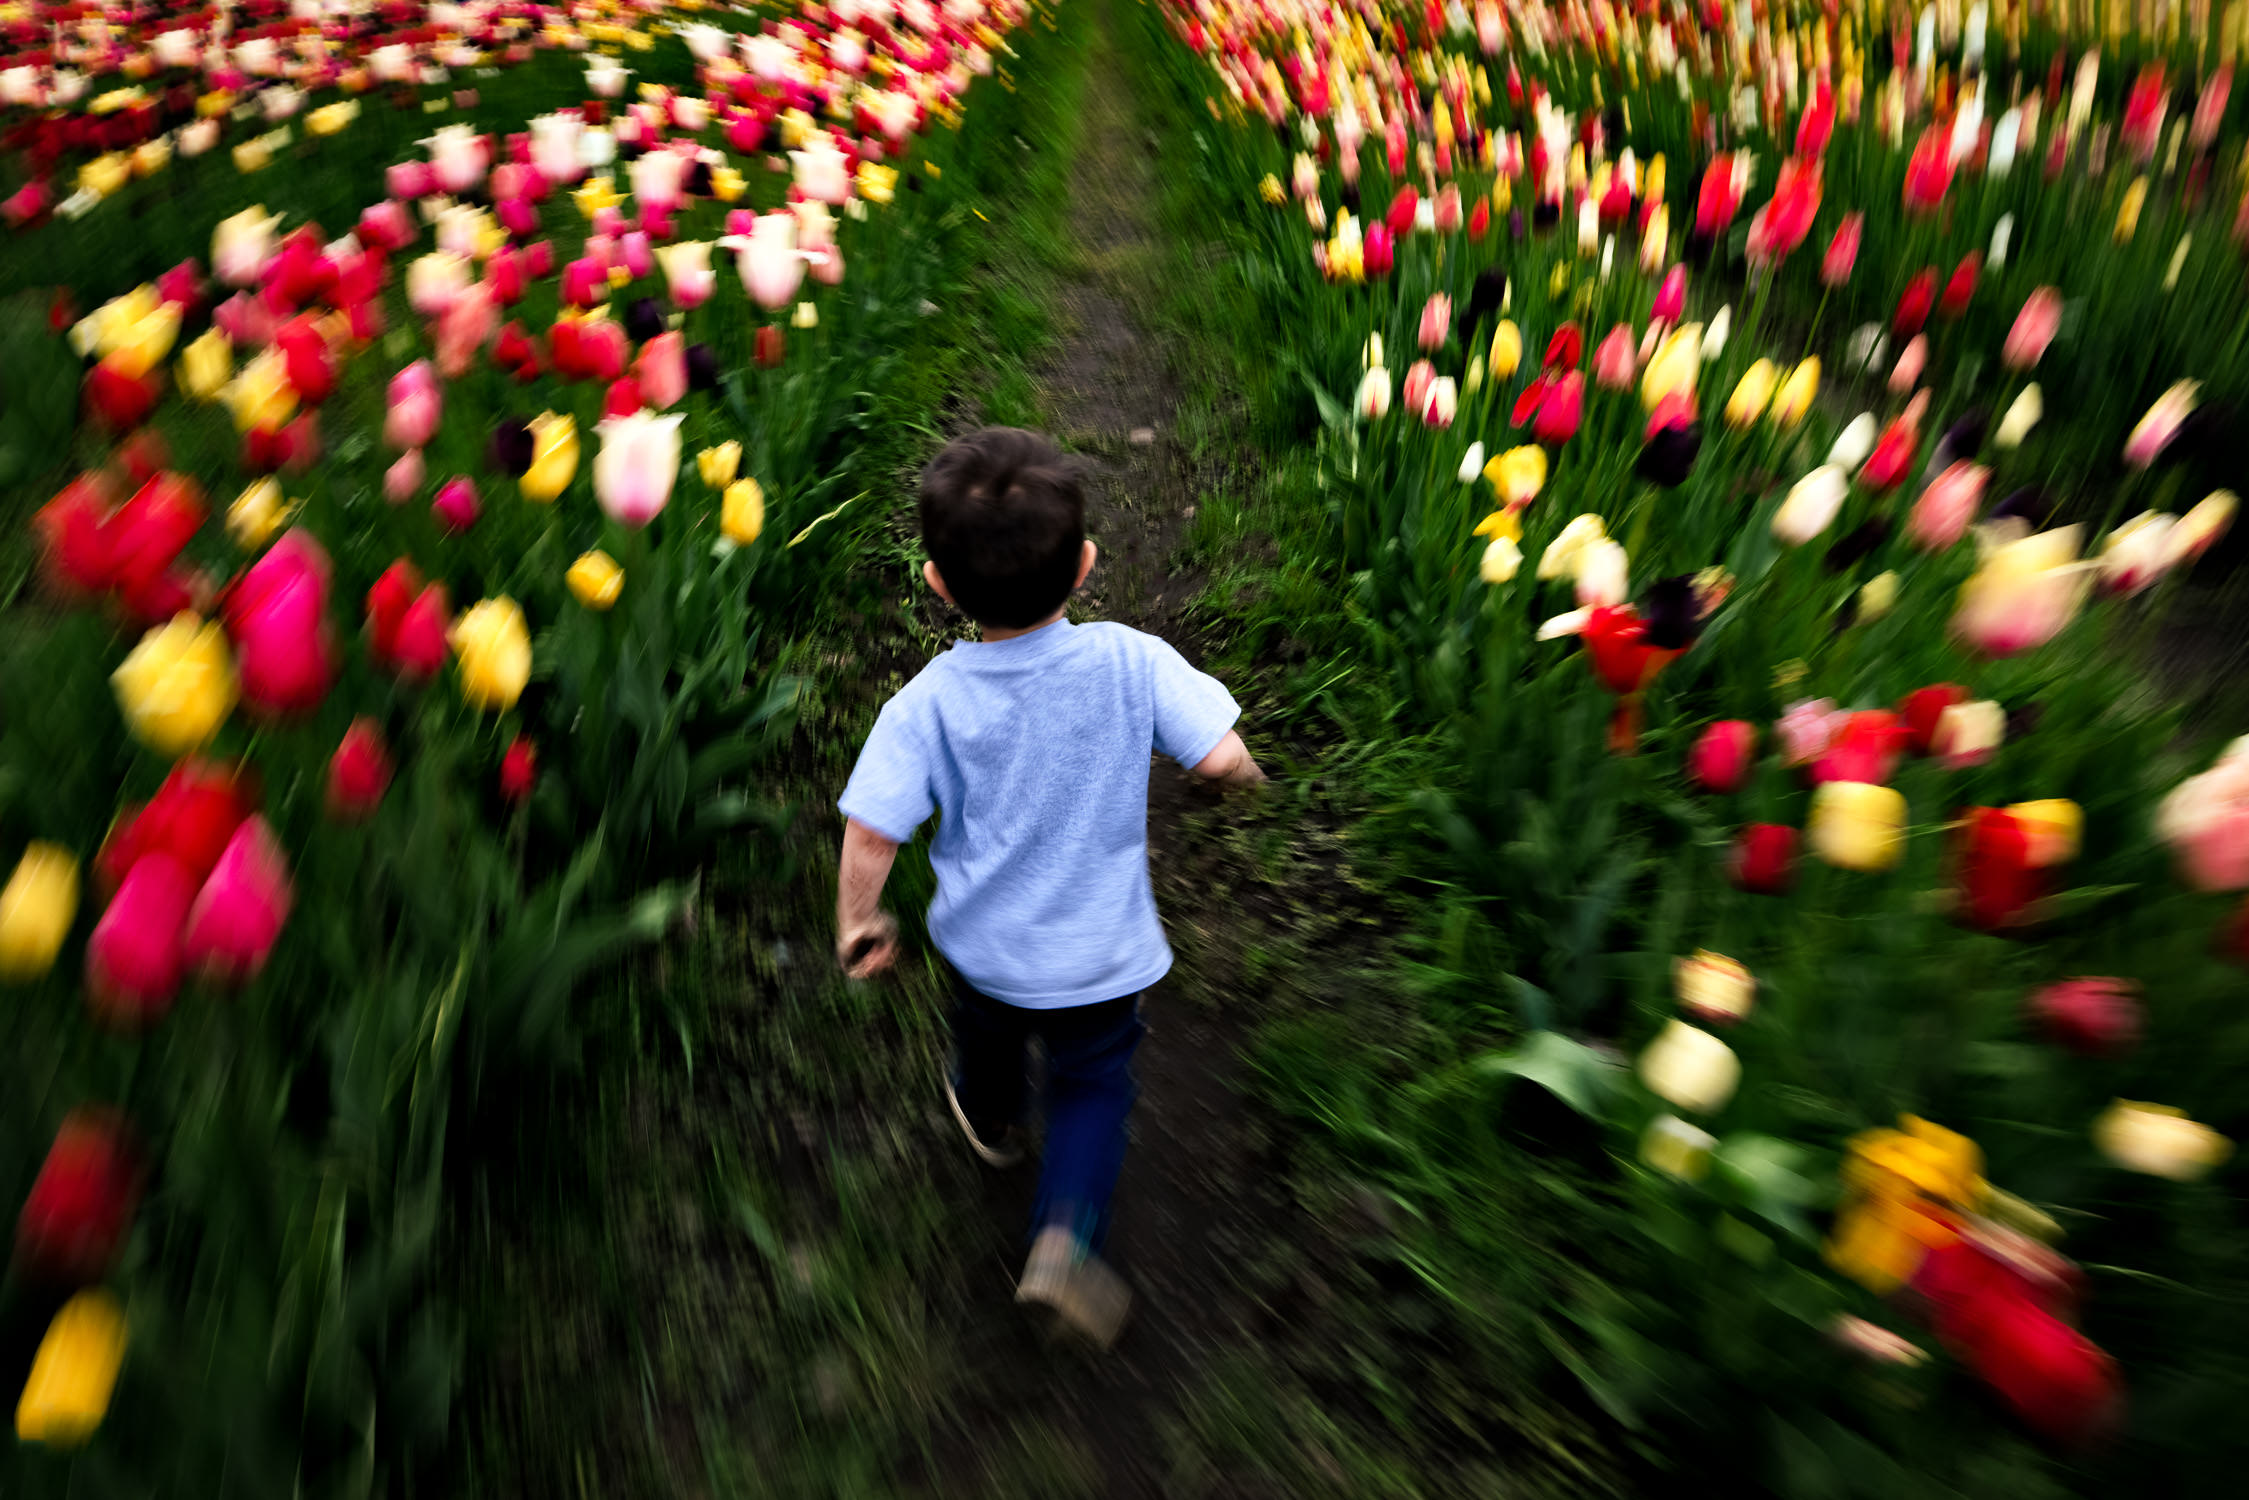 A motion blur photo of a boy running through a field of tulips from behind